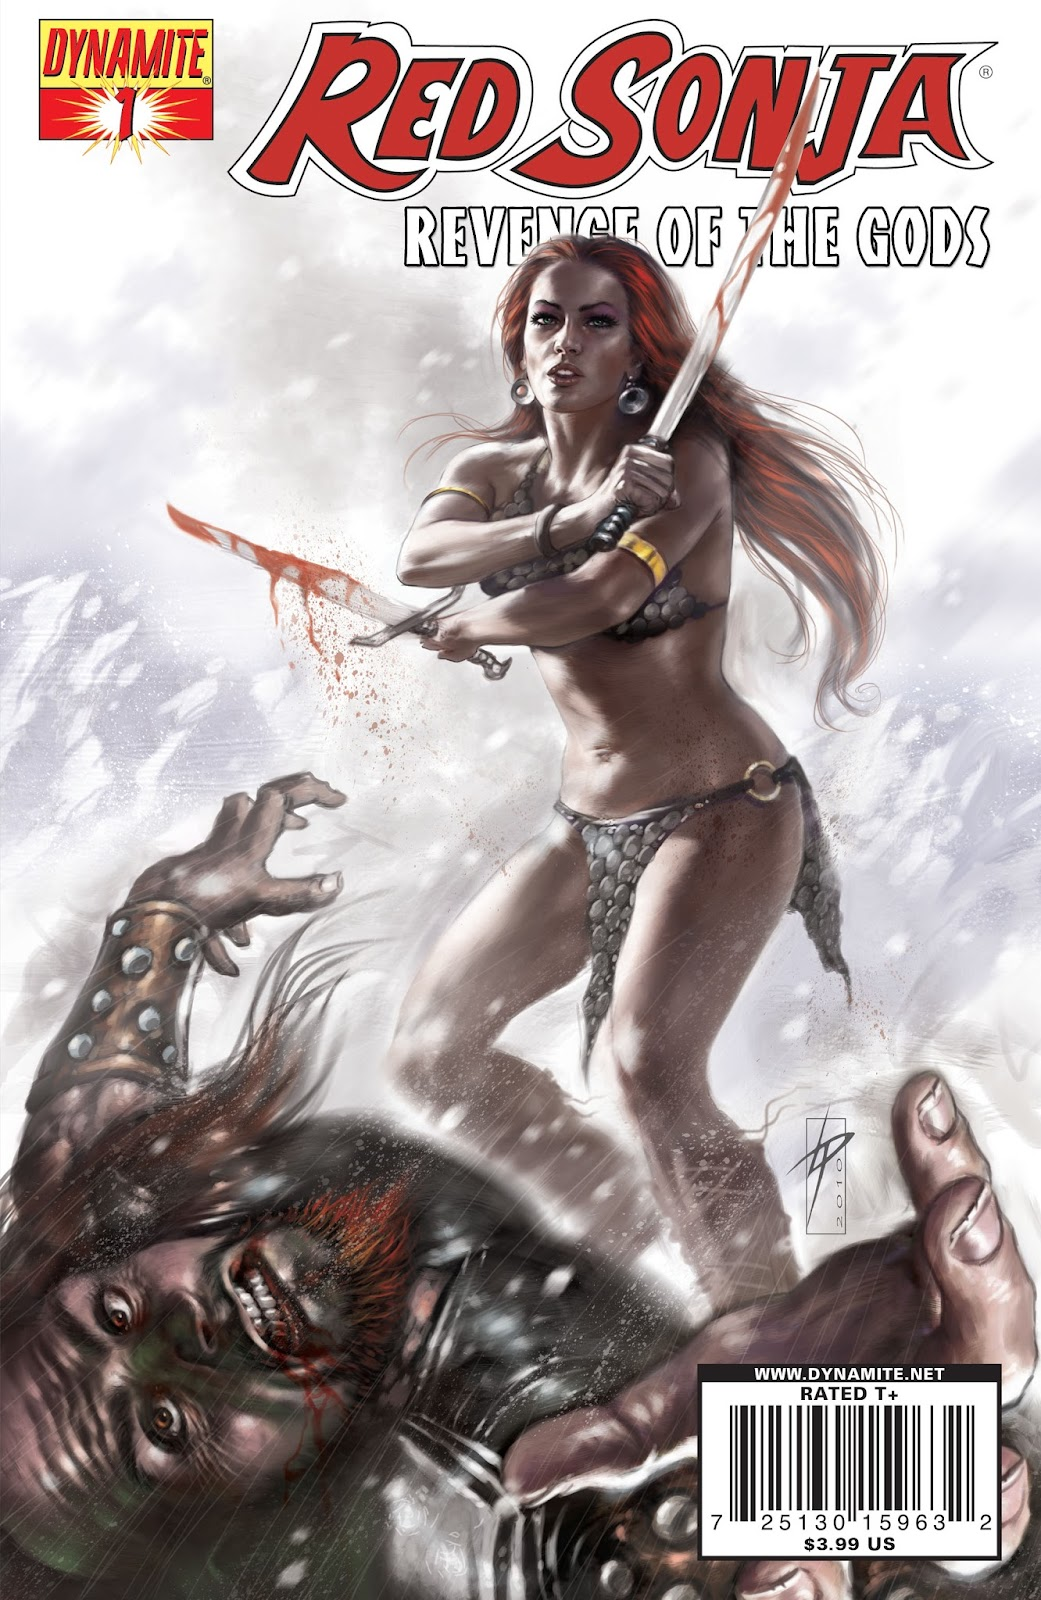 Red Sonja: Revenge of the Gods issue 1 - Page 1